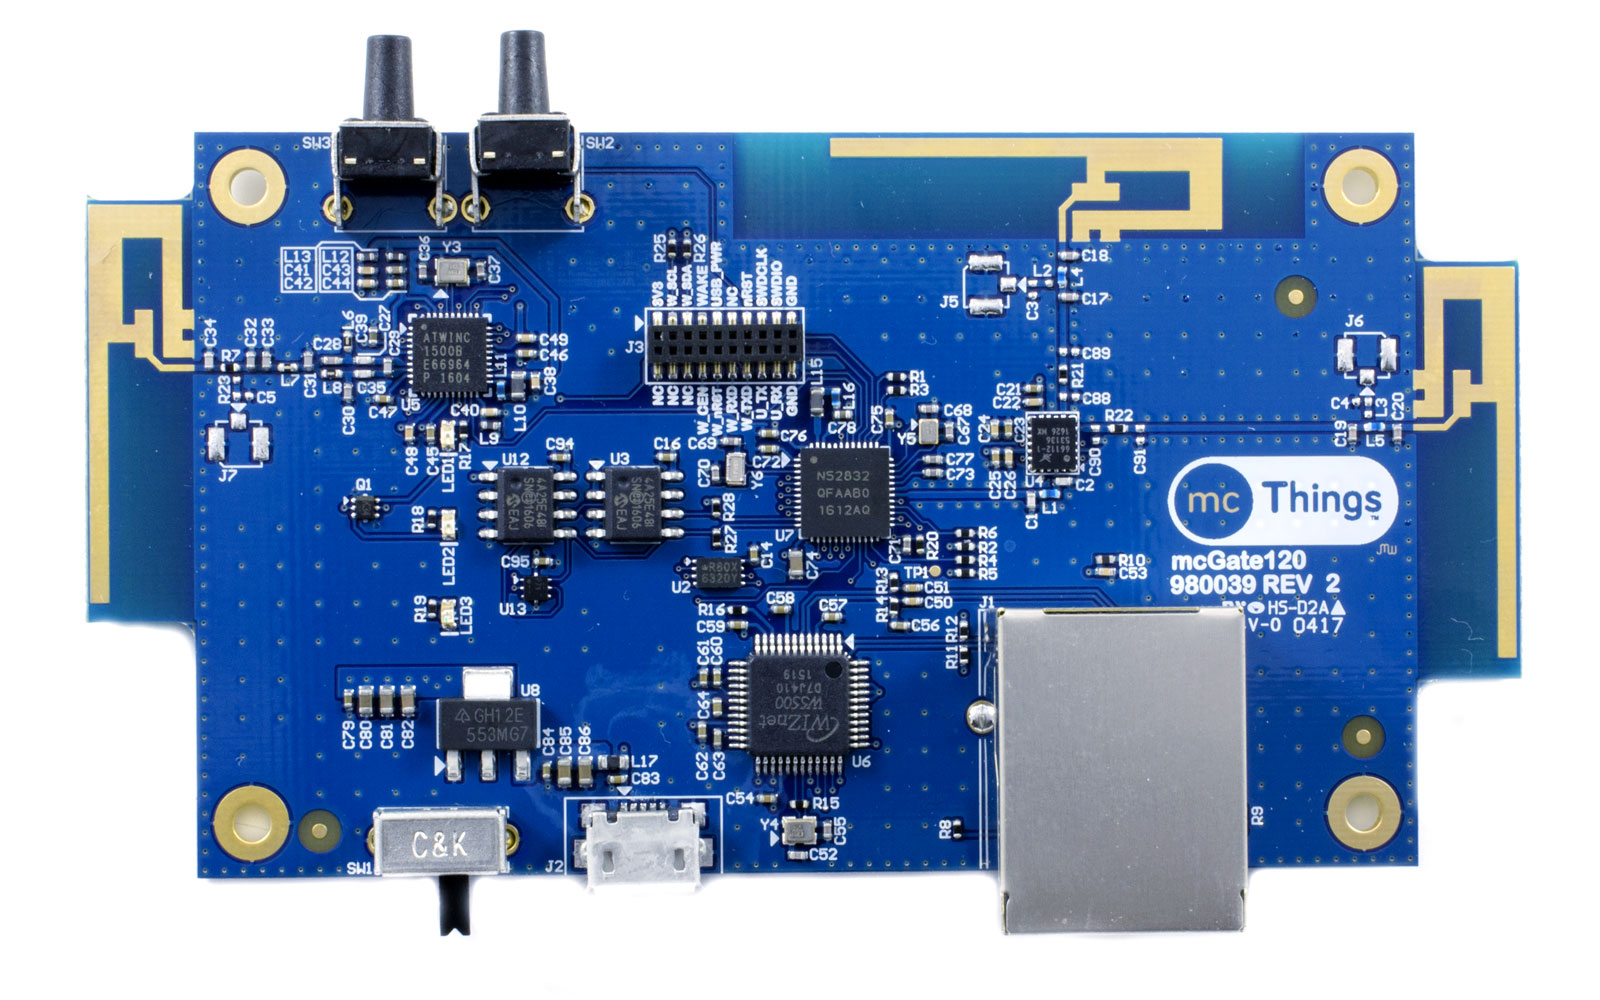 mcGateway120 Internet of Things Bridge